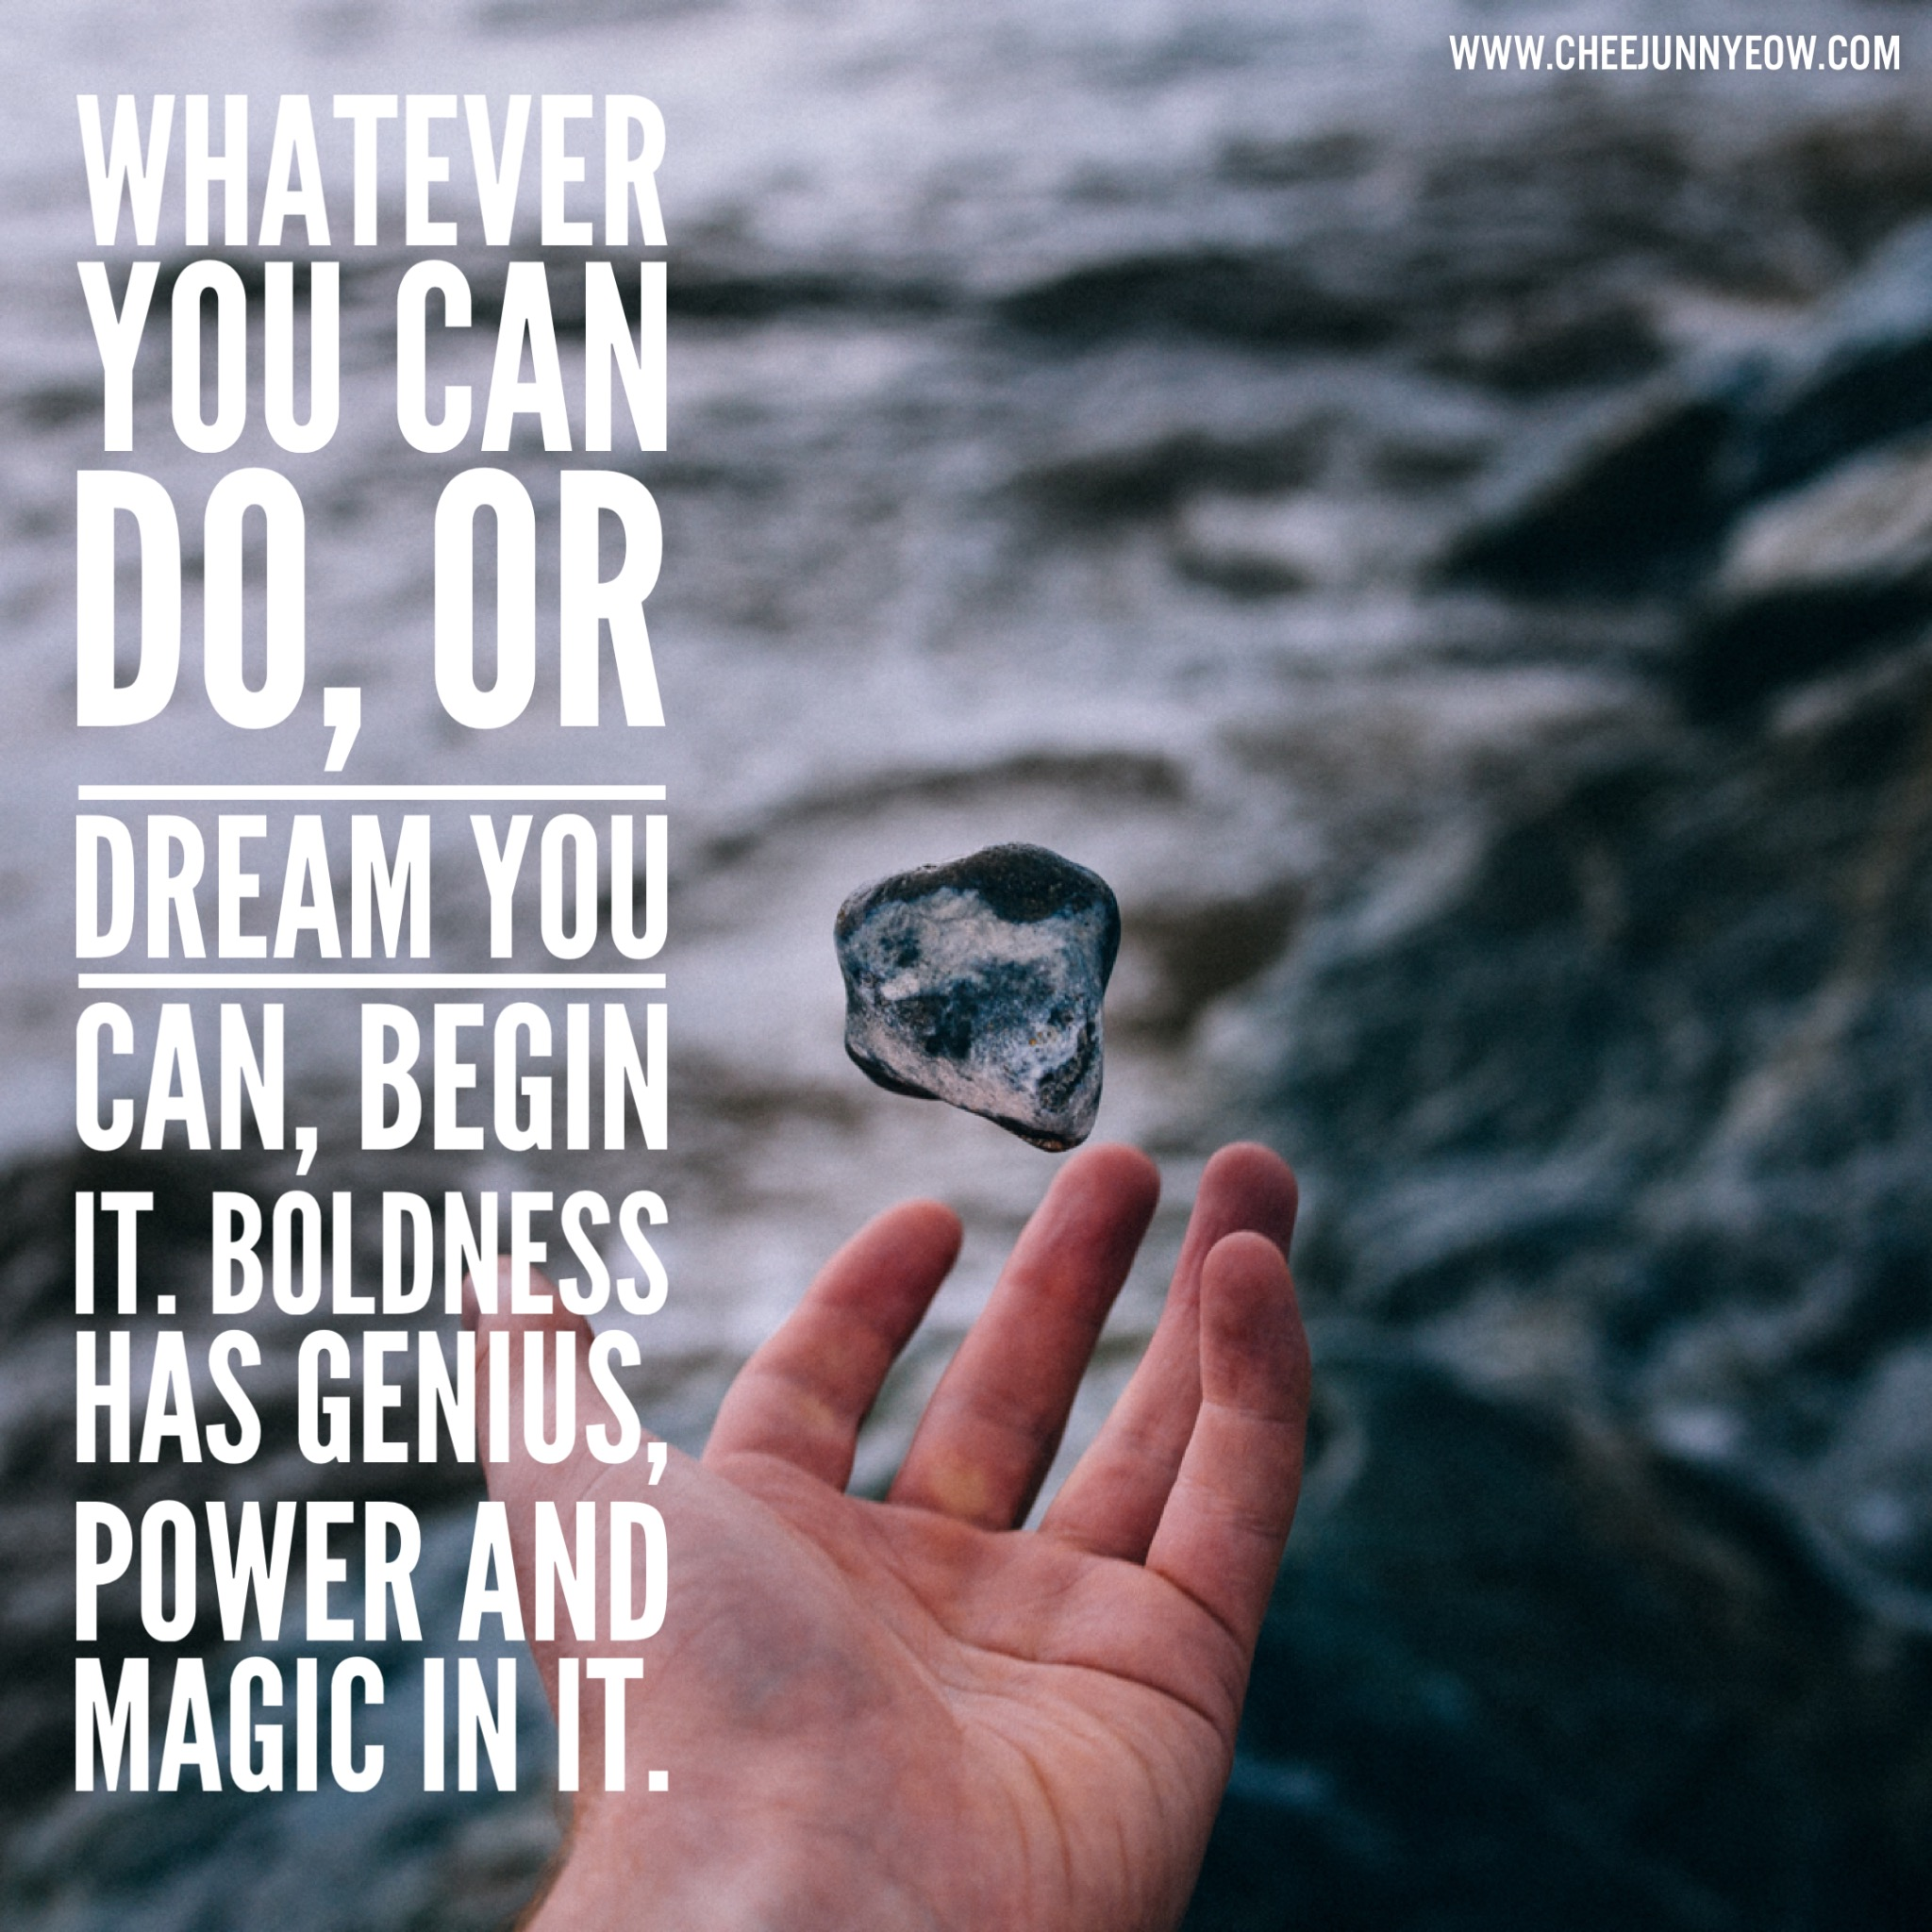 whatever you can do or dream you can begin it. boldness has genius, power and magic in it